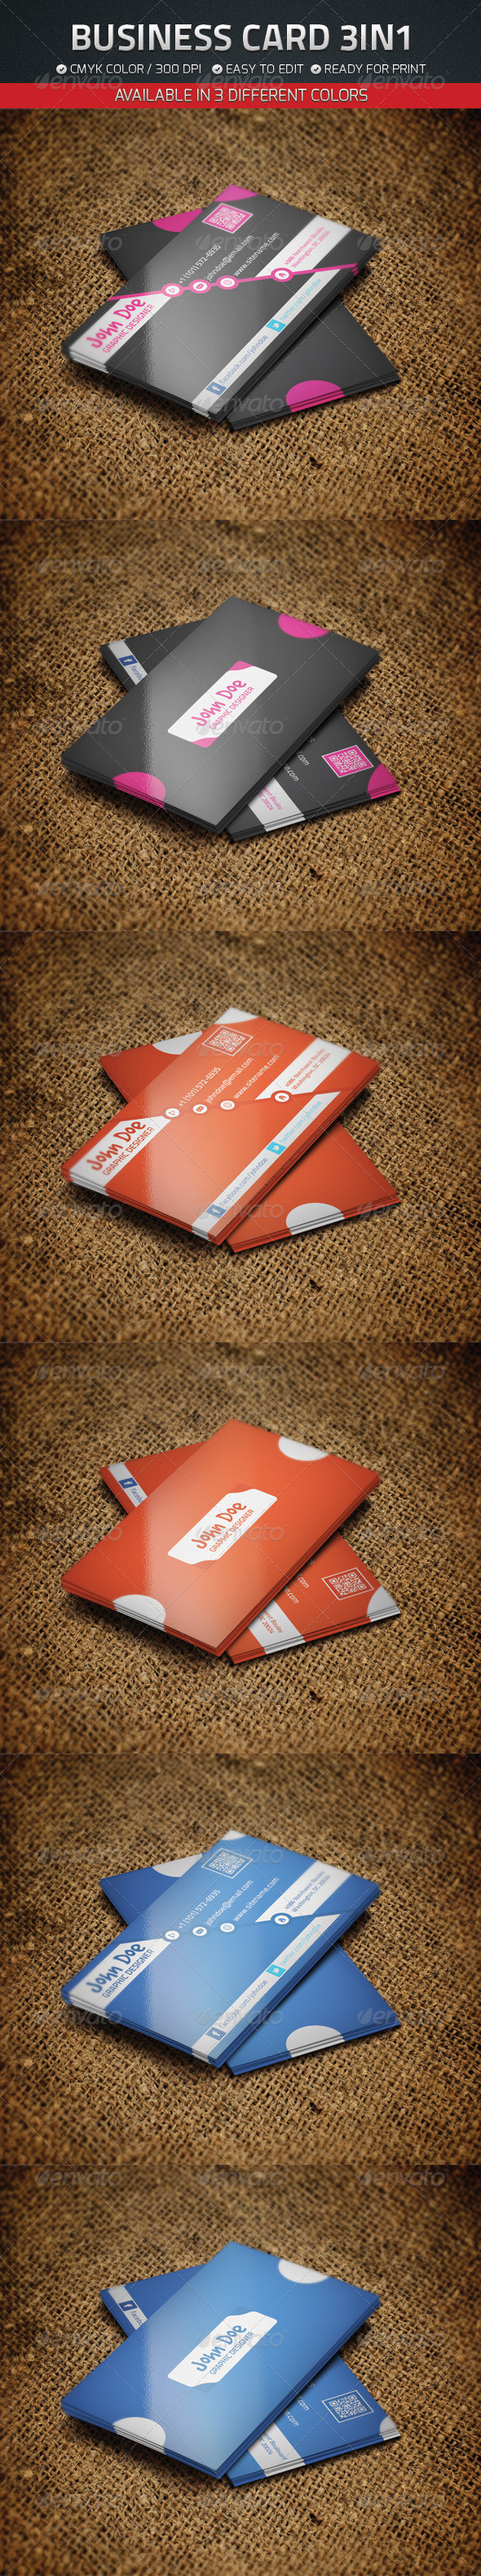 Business Card 3 in 1 - Creative Business Cards